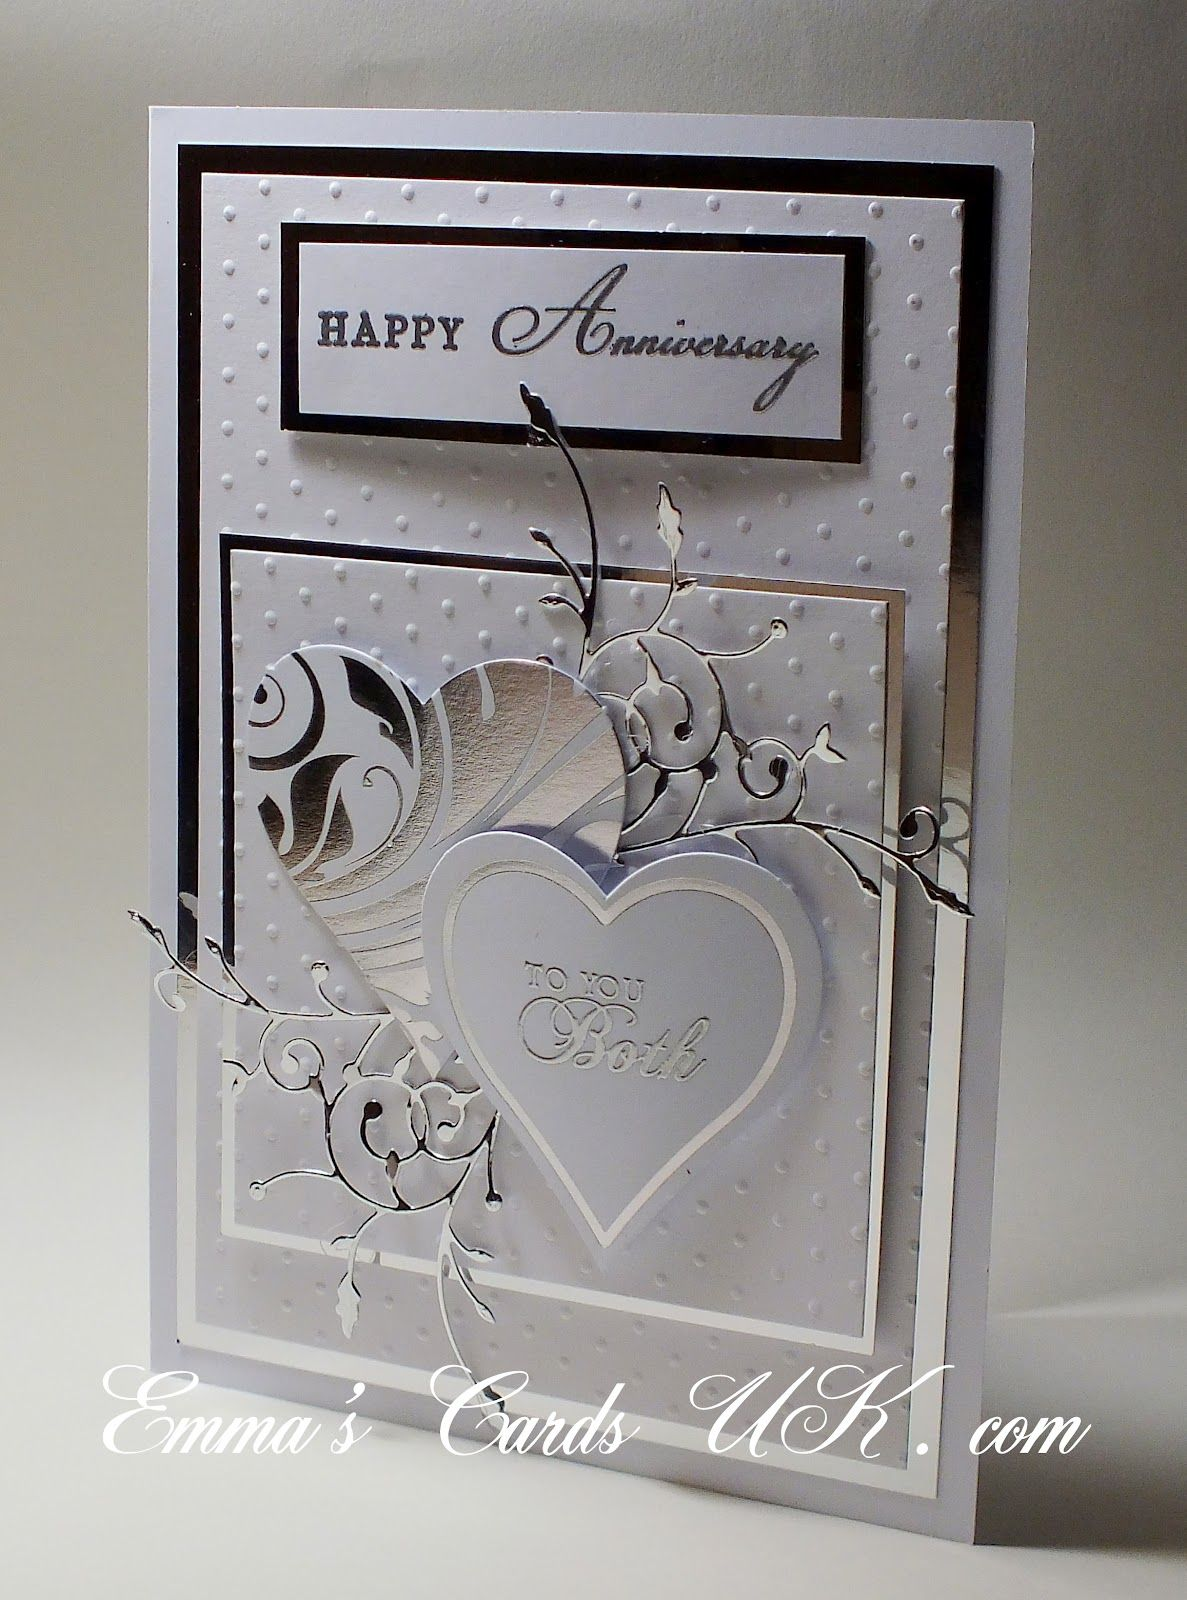 Stunning Anniversary Card Love The Look Of Silver And White Together